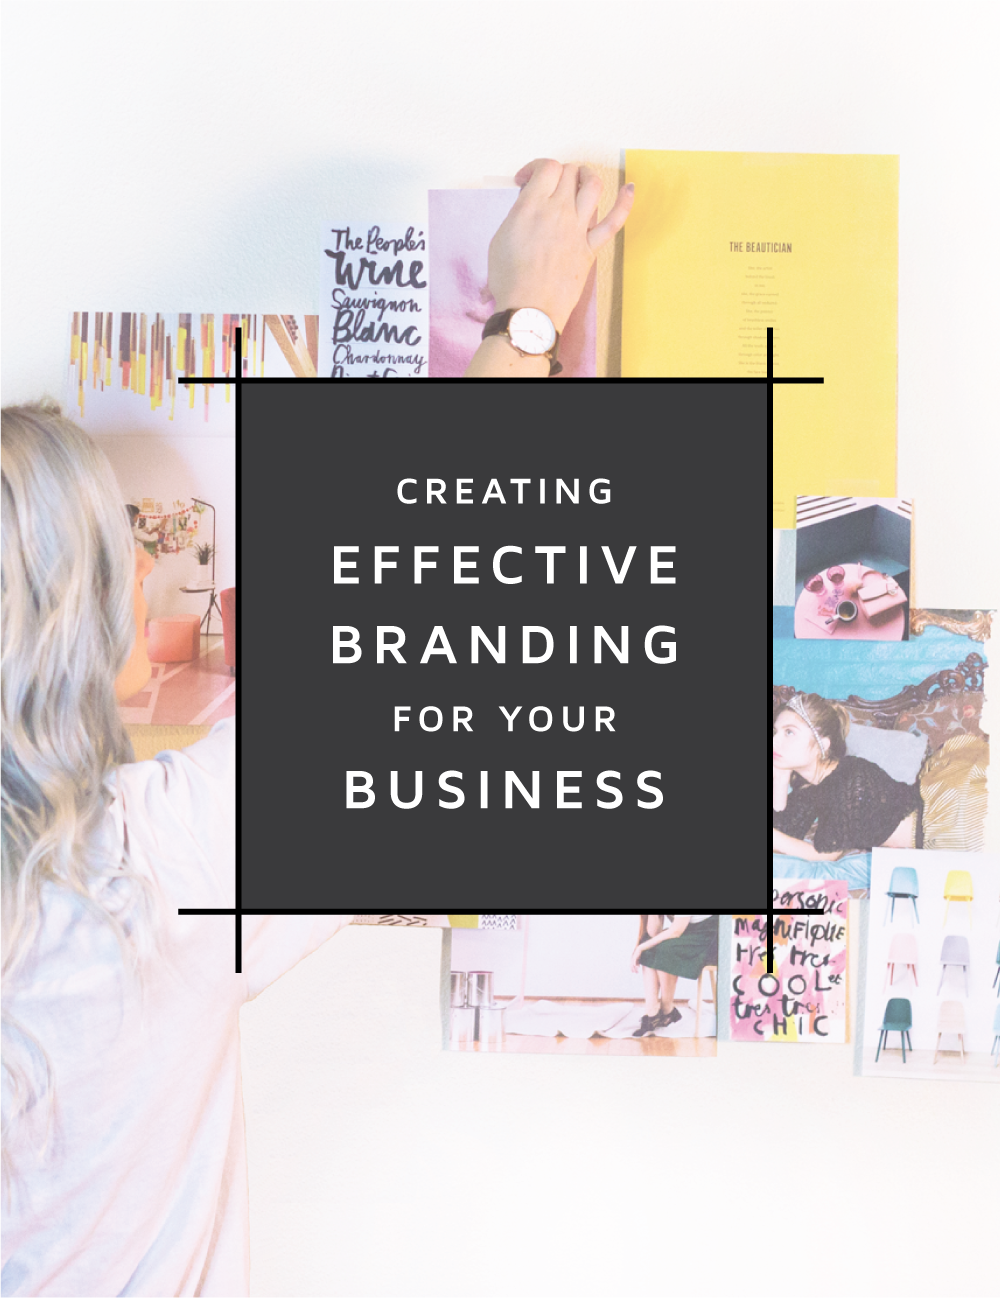 Learn how to create effective visual branding for your business.